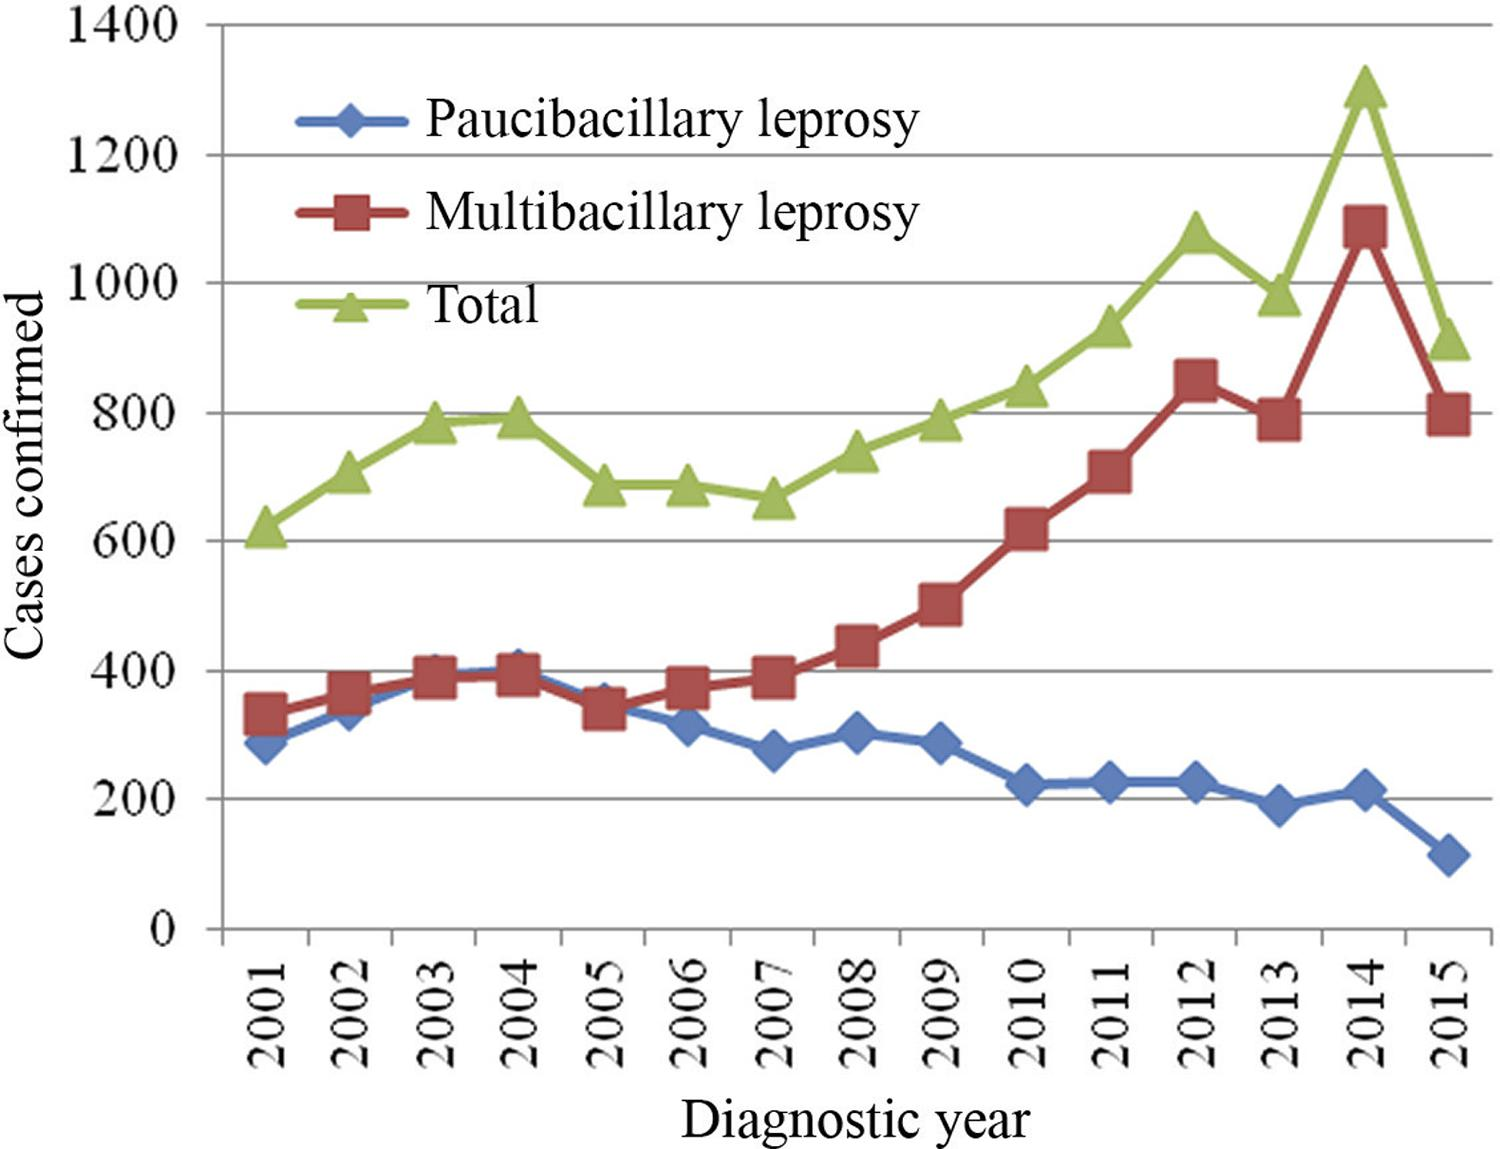 Cases confirmed by the operational classification of leprosy in the Mato Grosso do Sul State, Brazil, from 2001 to 2015.